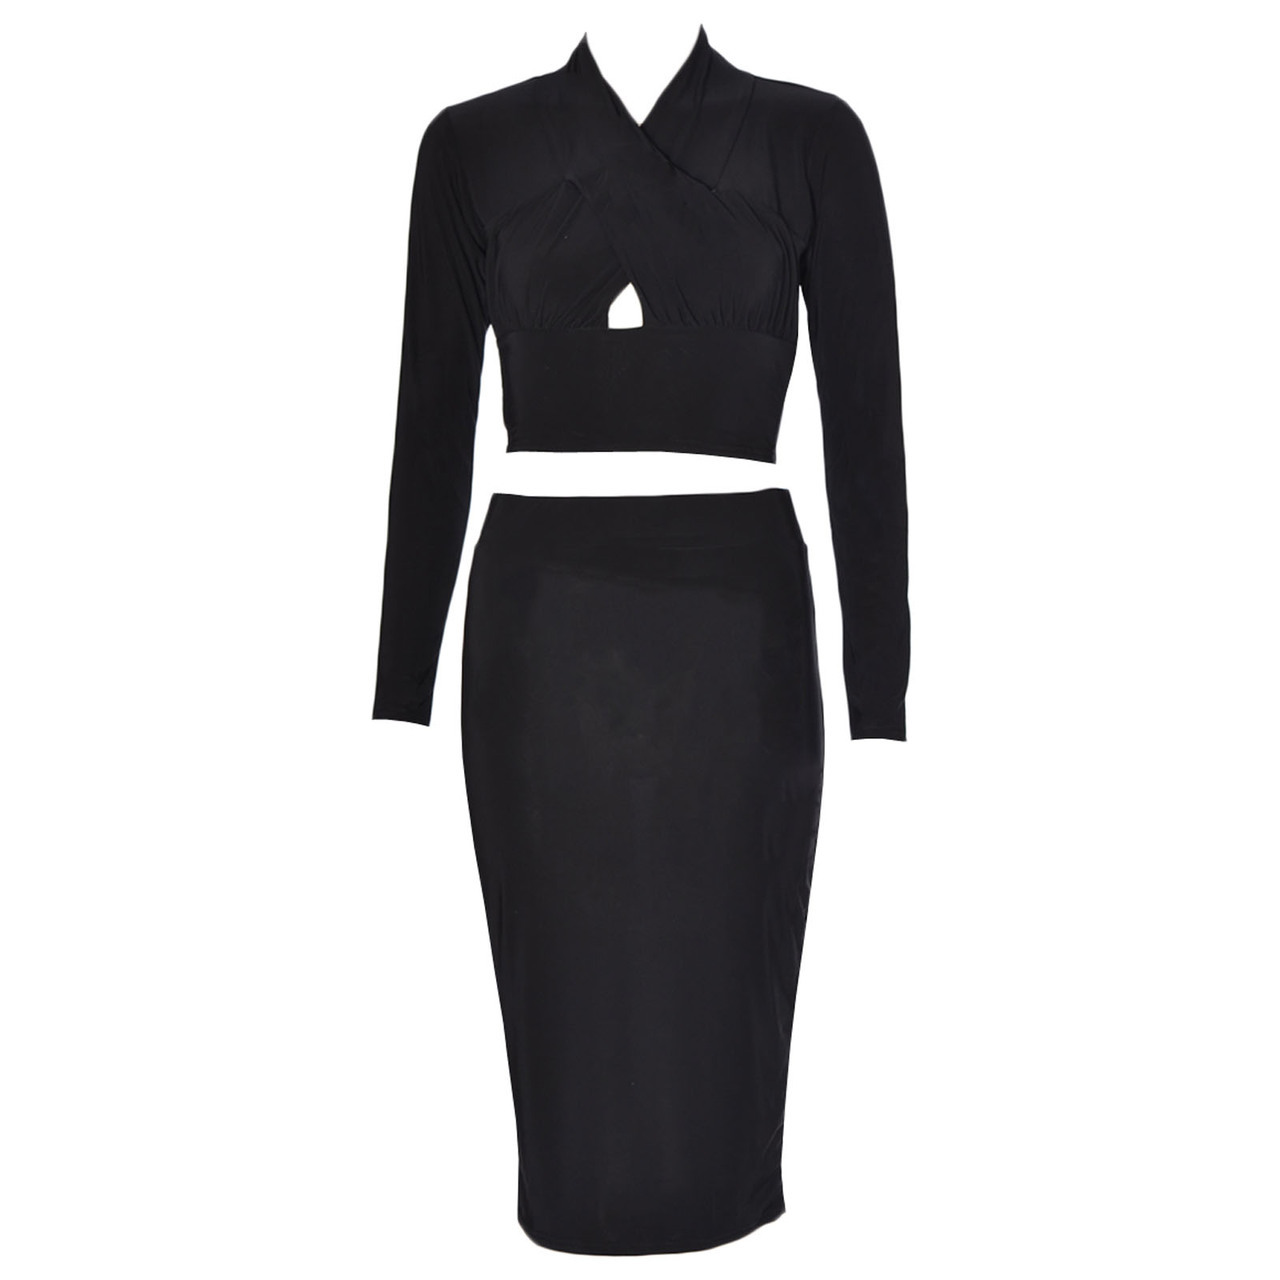 Women Cross Front Crop Top And Midi Skirt Two Piece Set Black 6-12